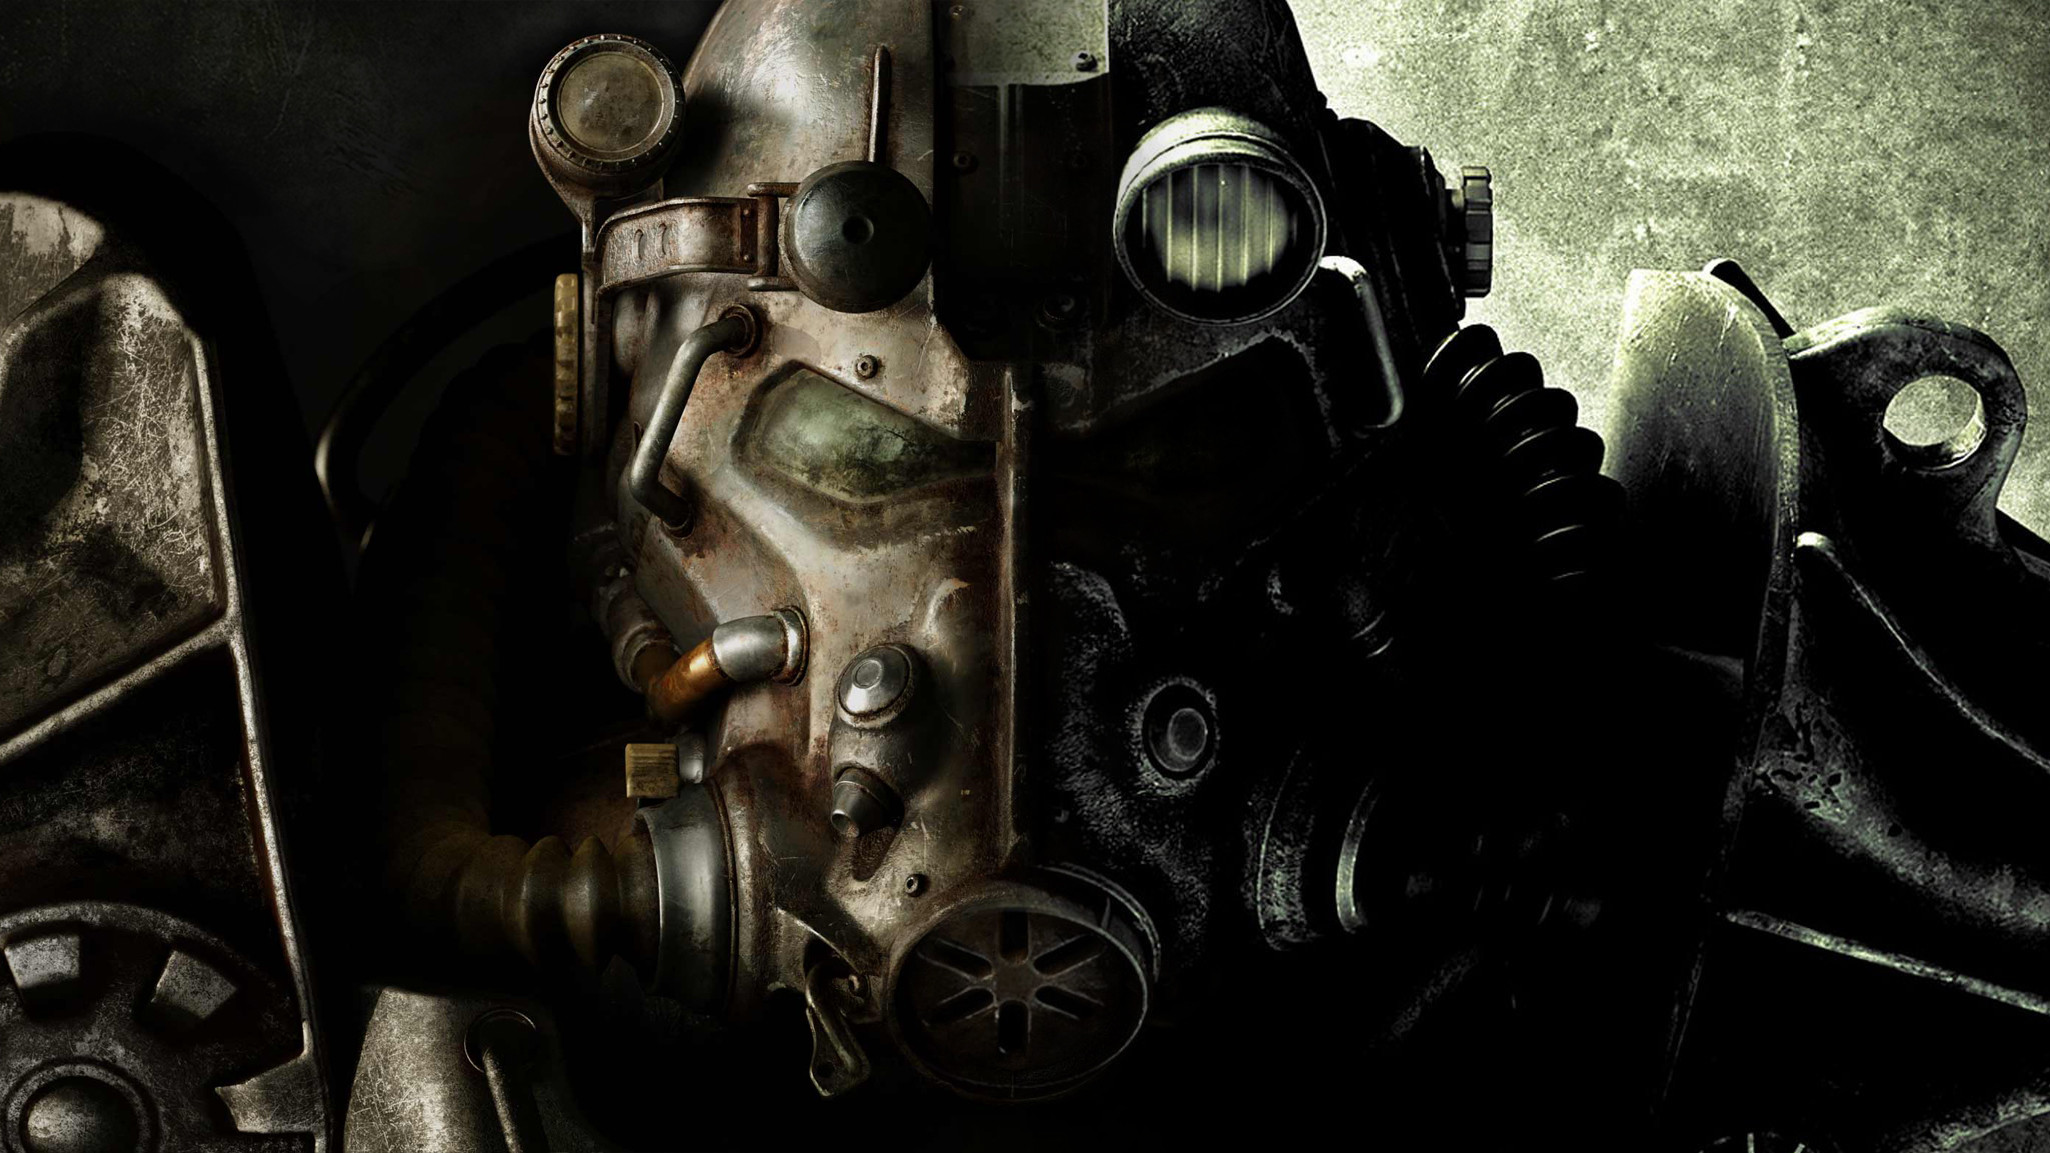 Fallout 4 / 3 Mashup (Redo / Not from trailer) by .